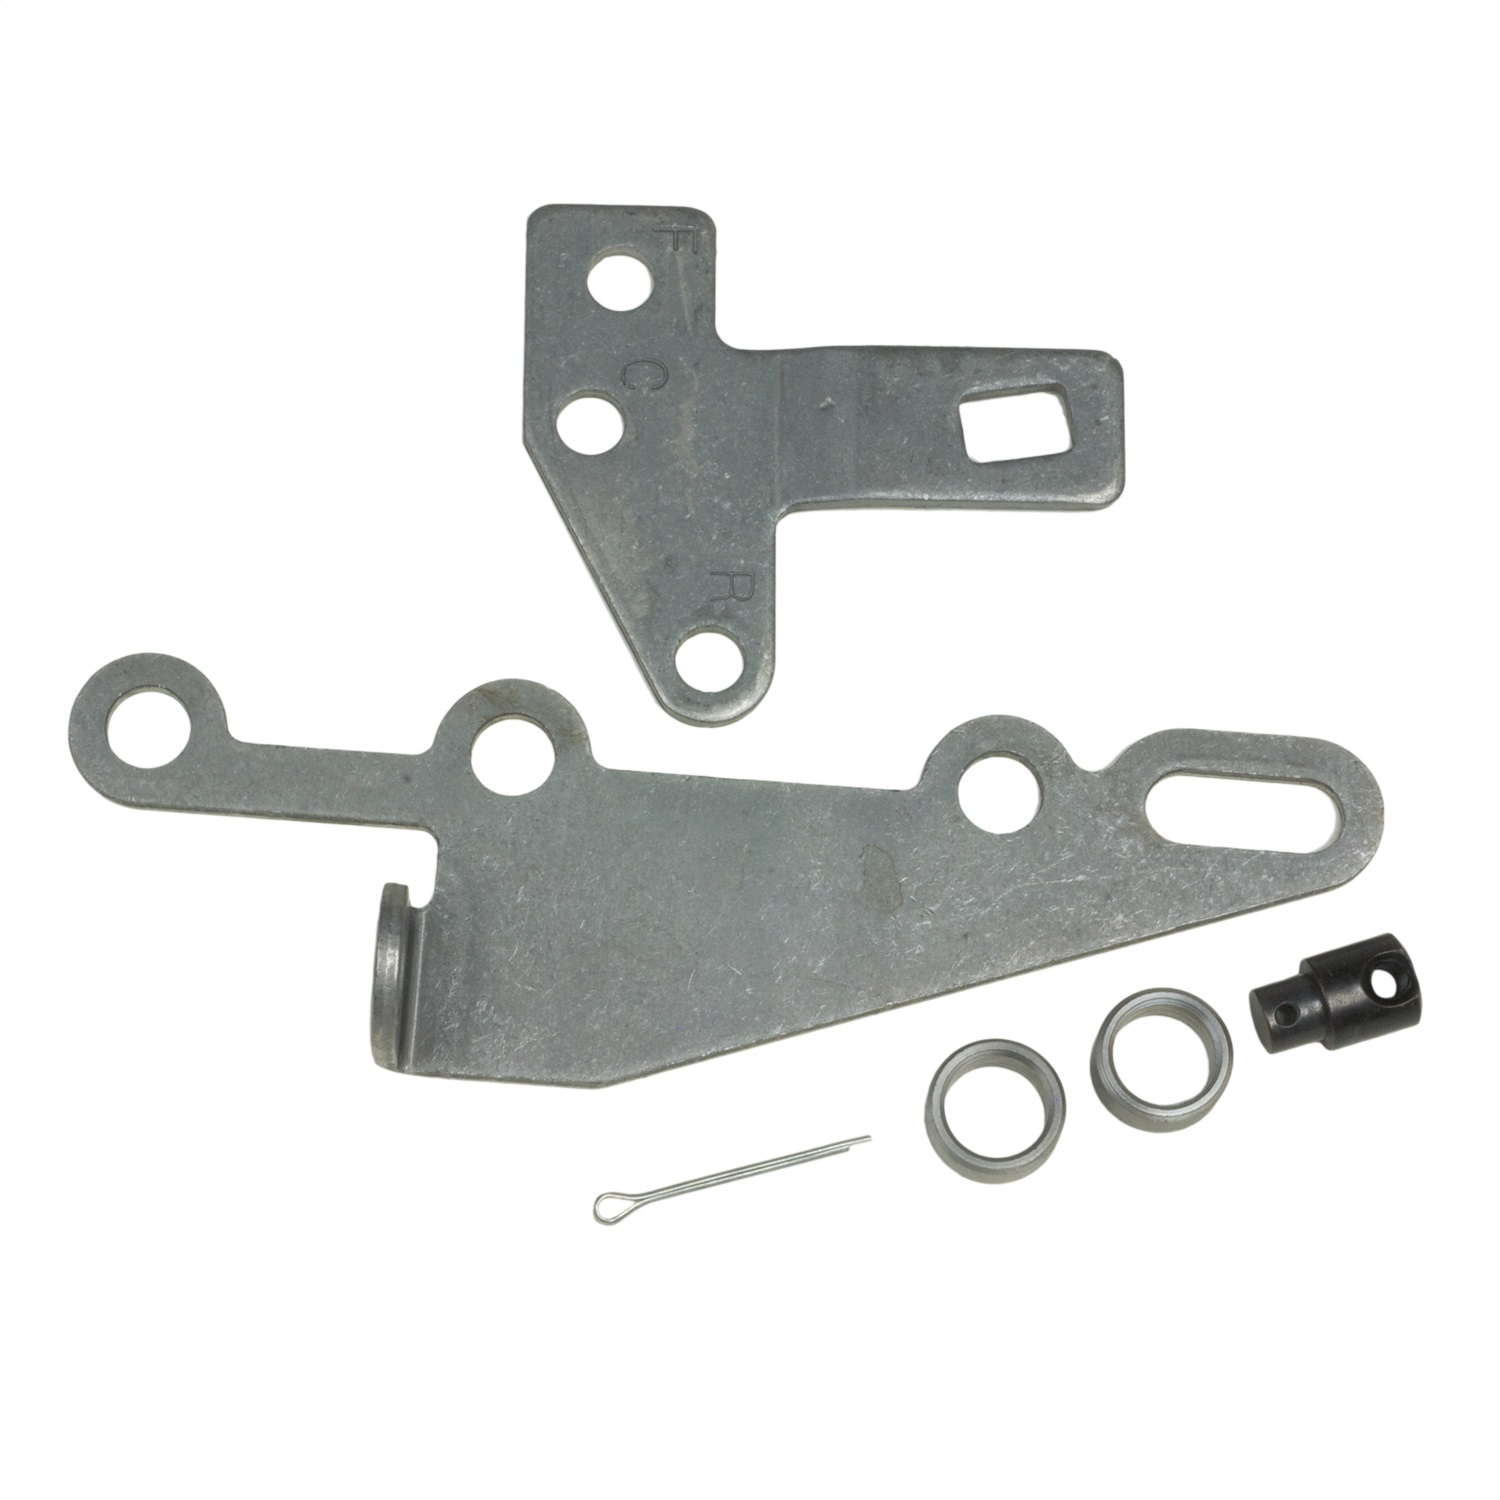 B&M 35498 BRACKET AND LEVER KIT